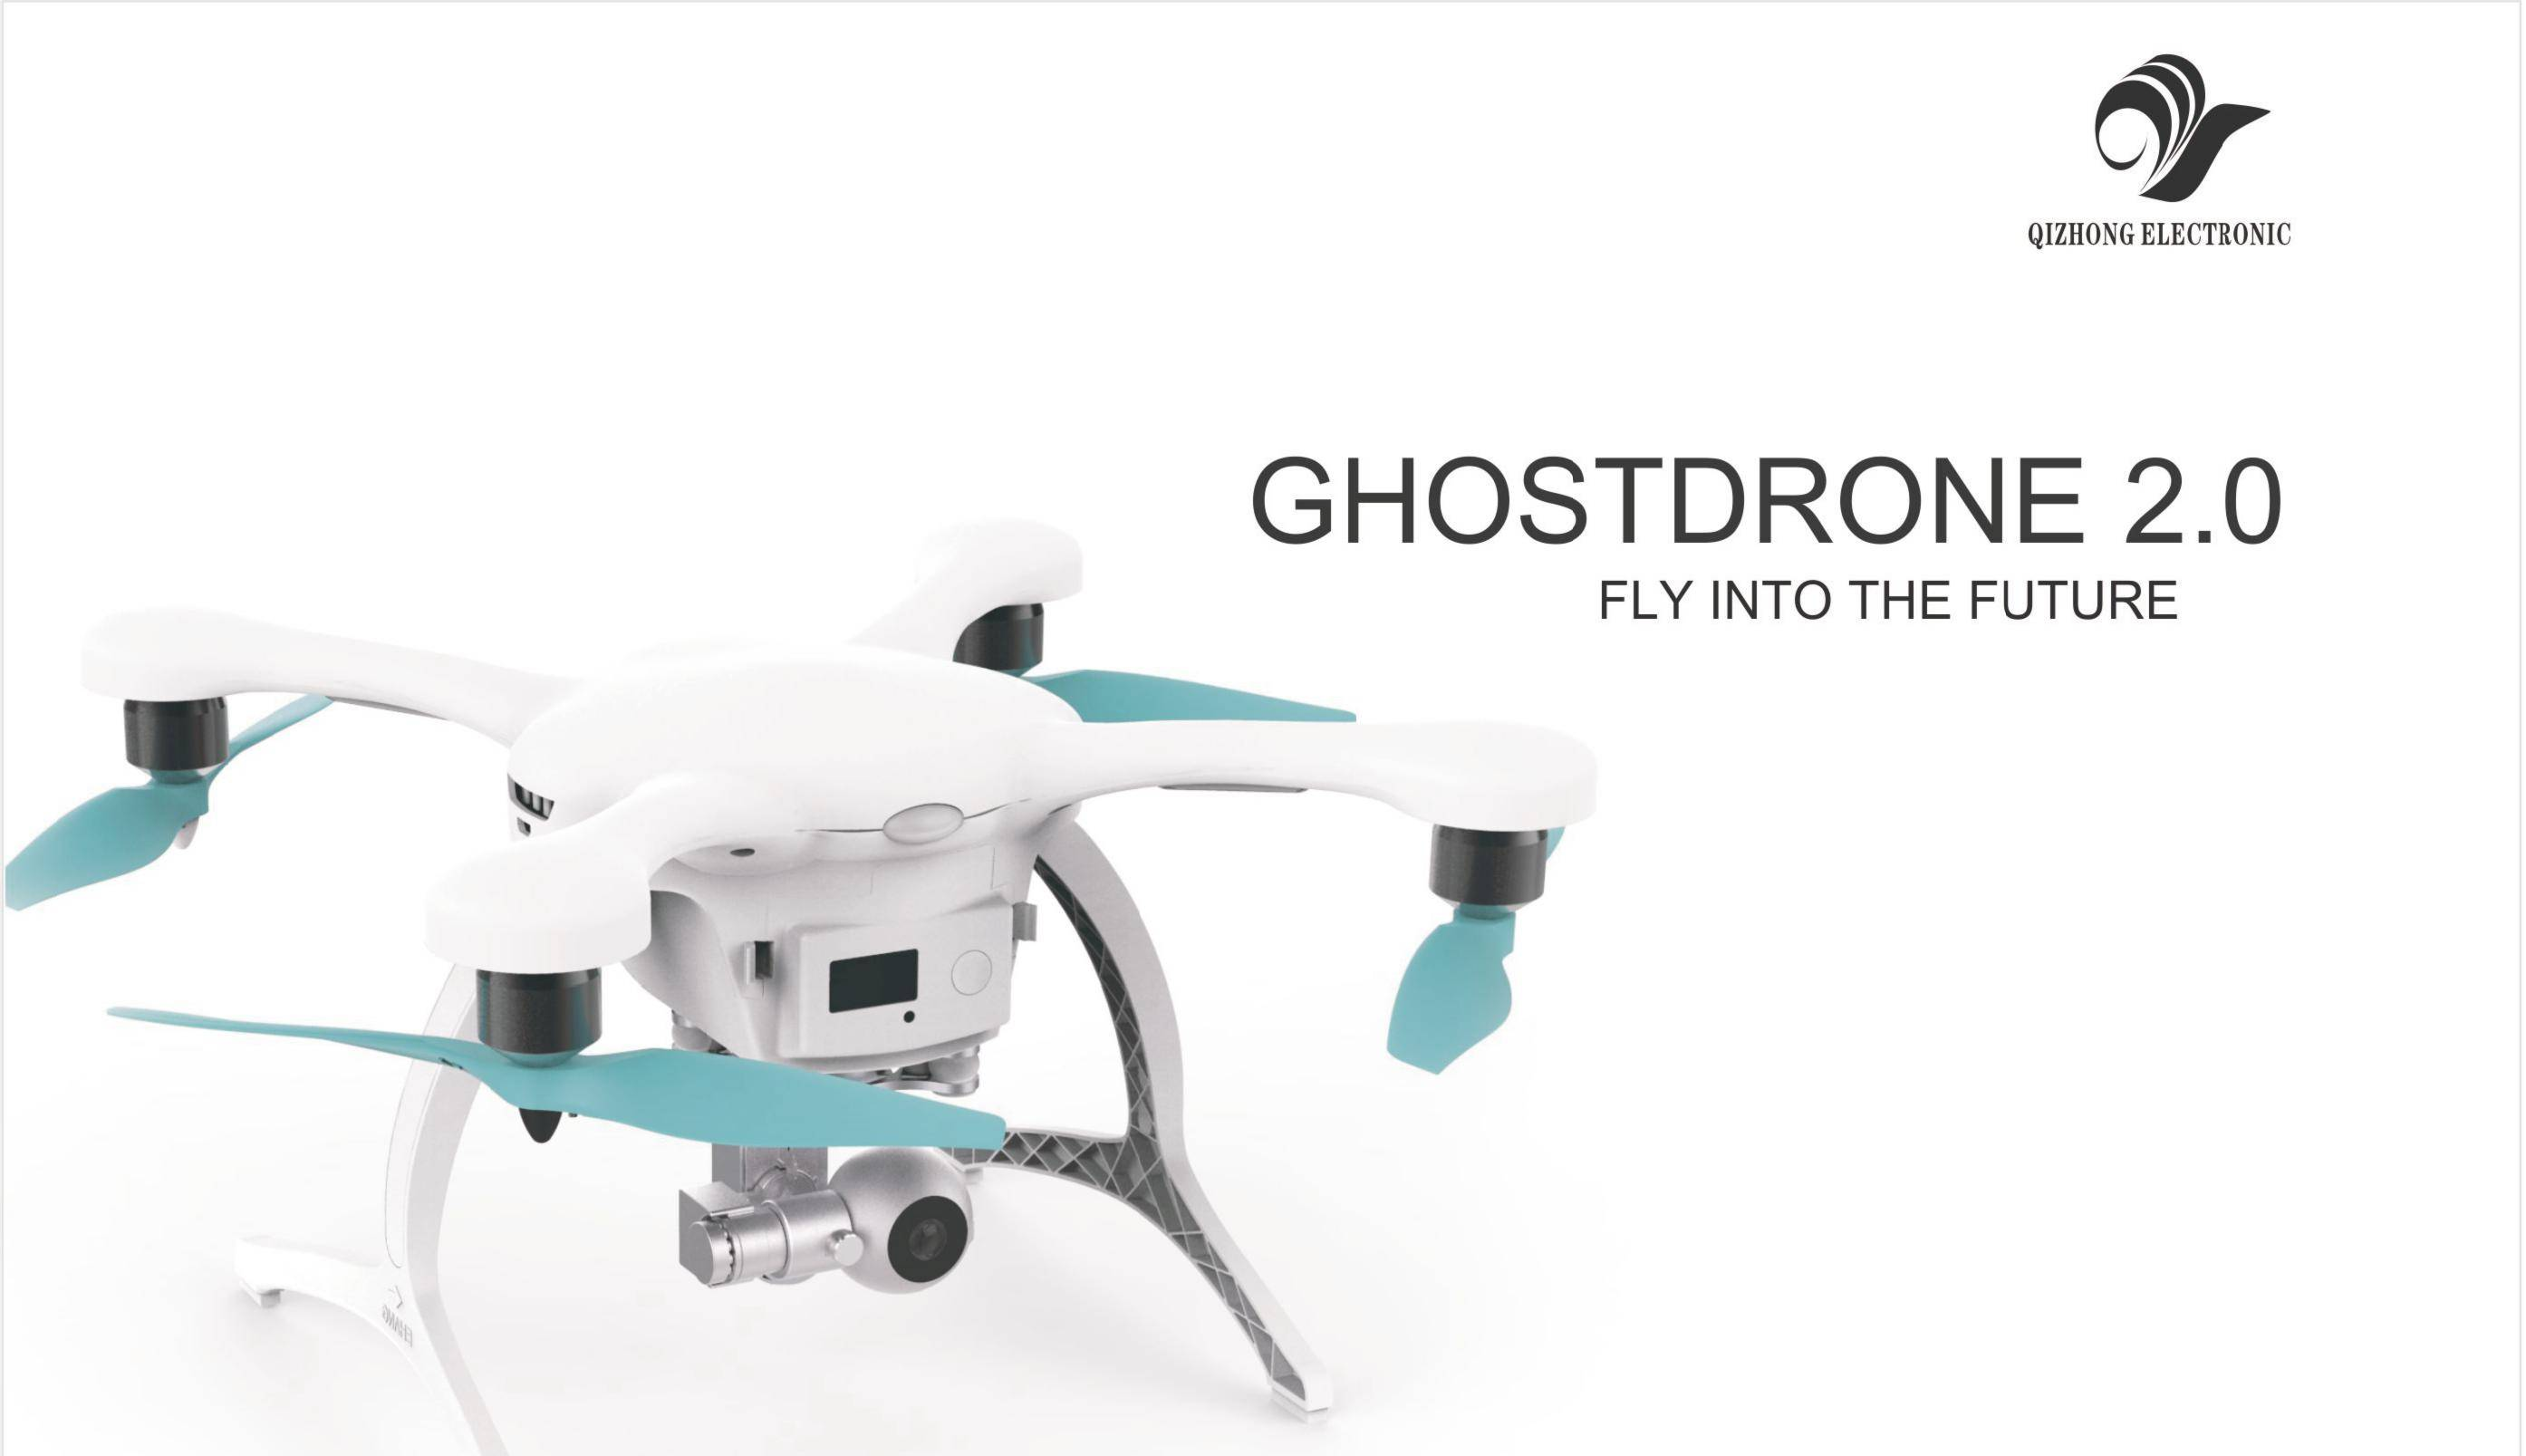 GHOSTDRONE 2.0 VR video drone with camera quadcopter fpv remote control aerial rc hobby toy uav